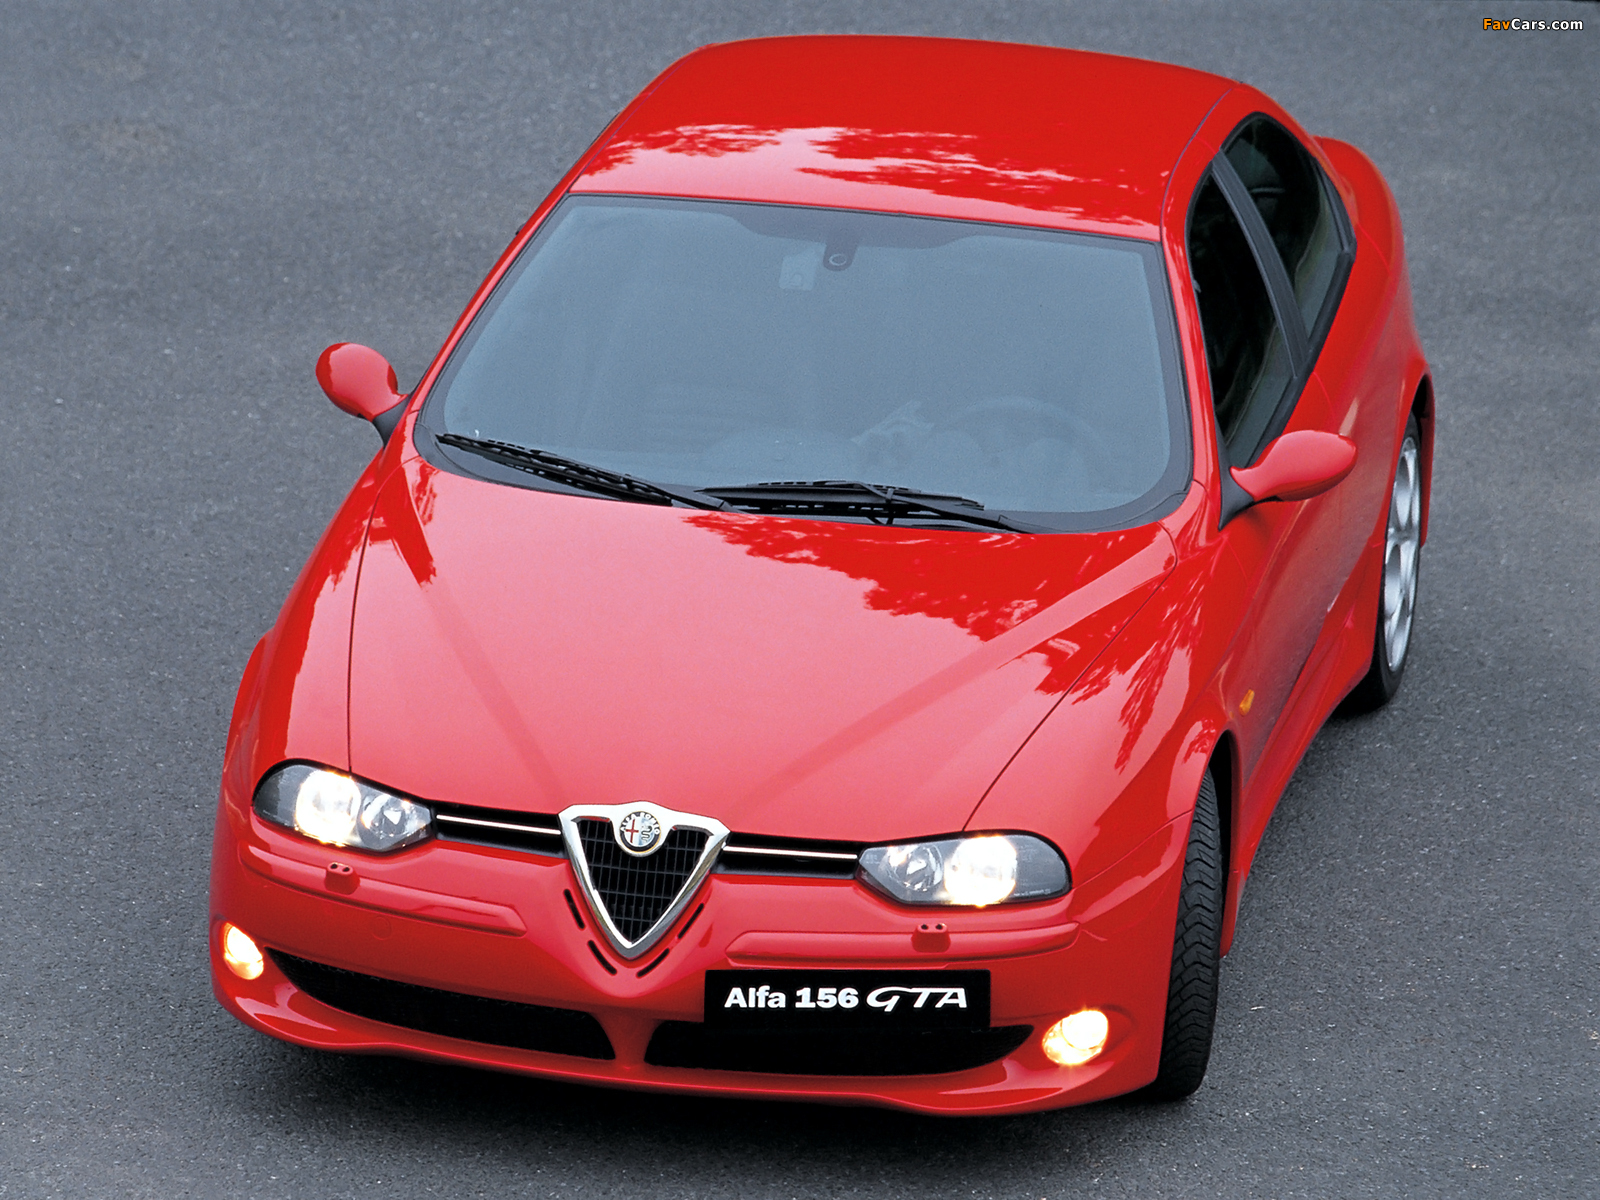 alfa romeo 156 gta 932a 2002 2005 wallpapers 1600x1200. Black Bedroom Furniture Sets. Home Design Ideas